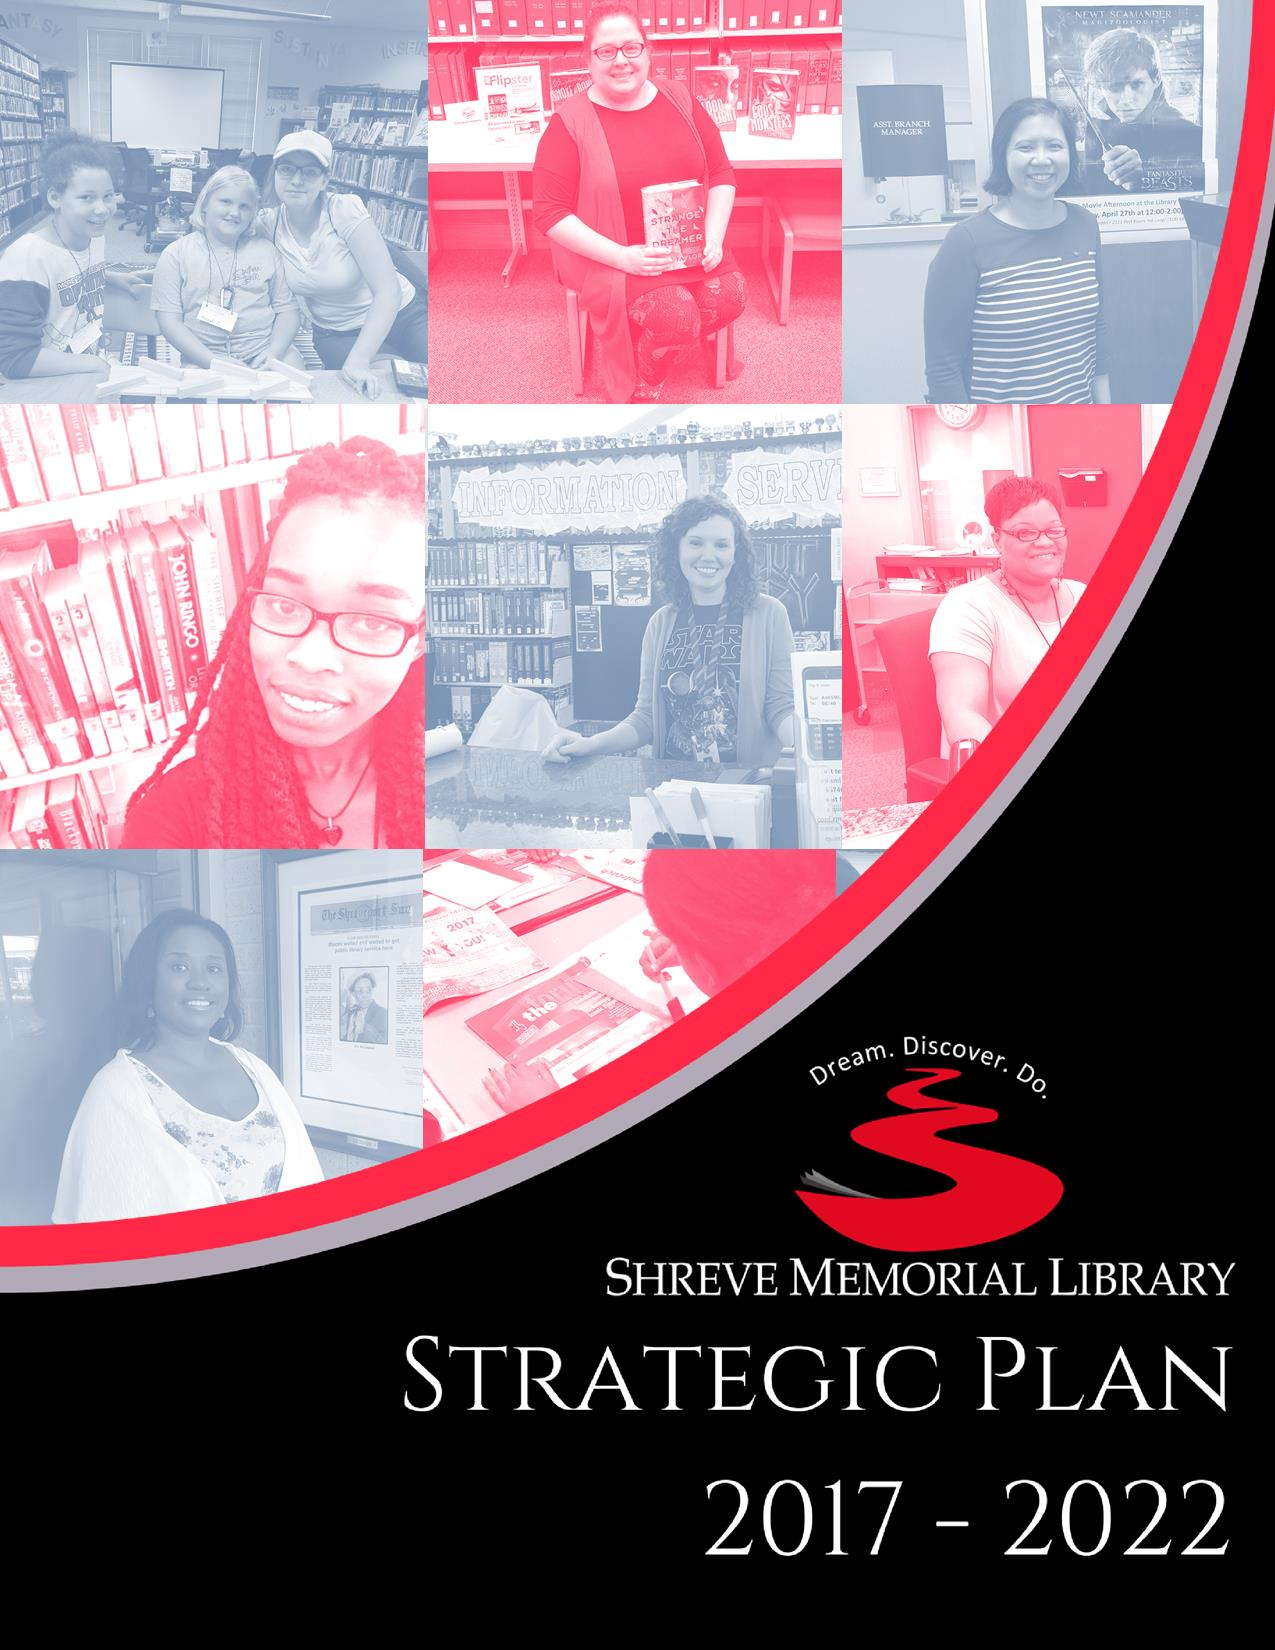 Shreve Memorial Library Strategic Plan